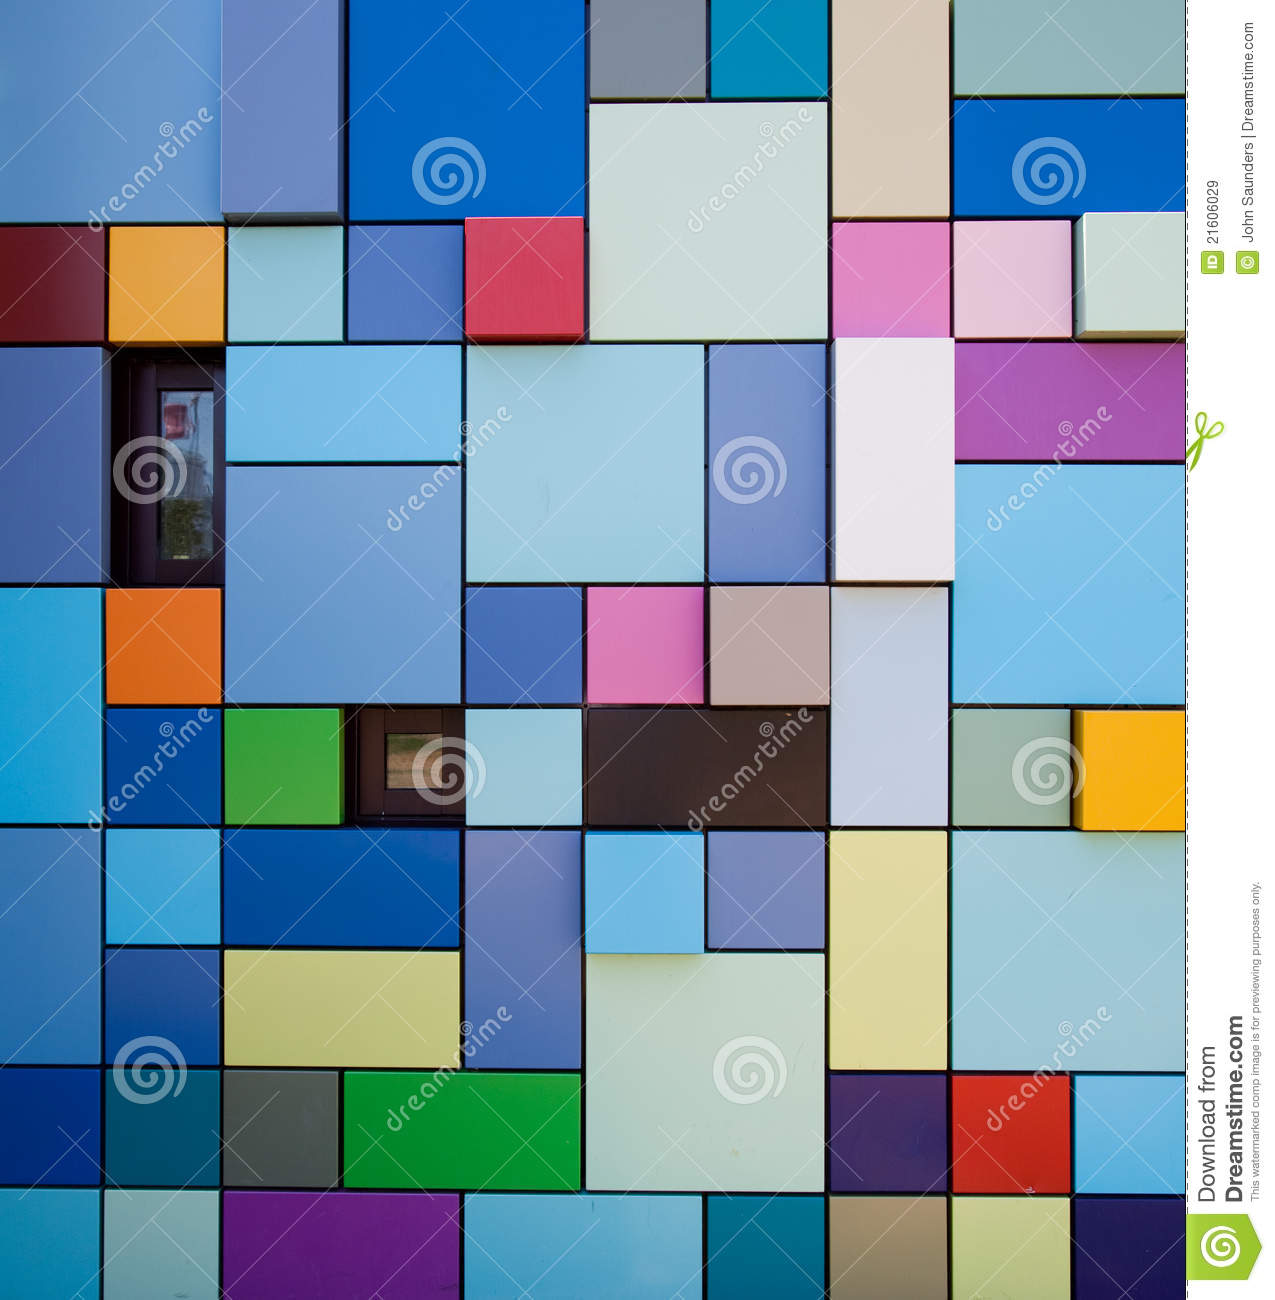 Colorful Wall Design Royalty Free Stock Images Image